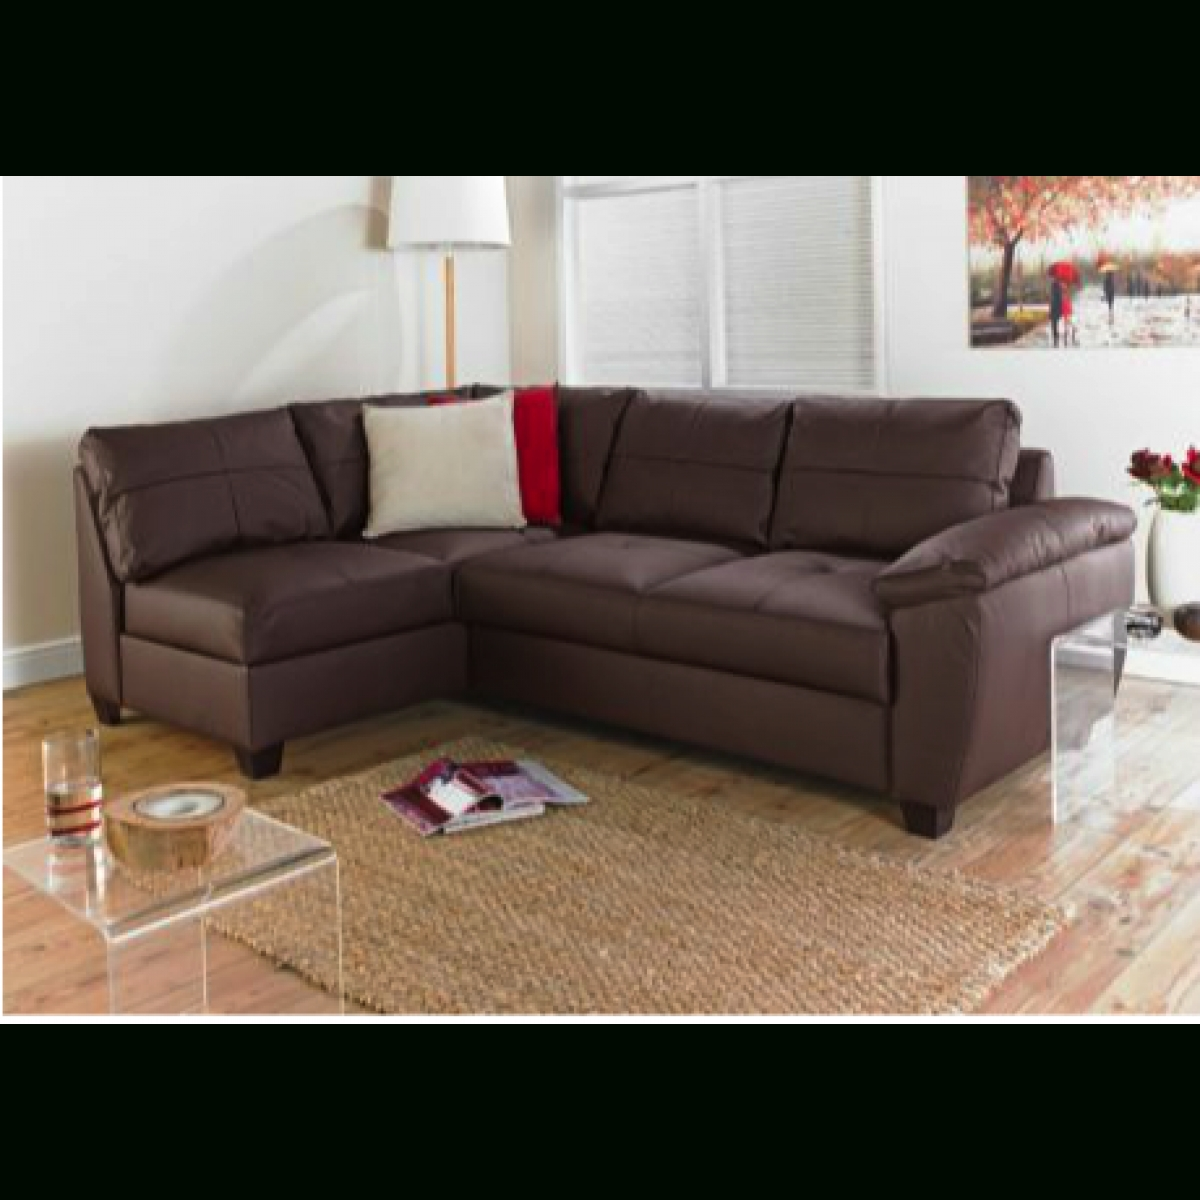 Fernando Leather Left Hand Sofa Bed Corner Group - Chocolate with Leather Corner Sofa Bed (Image 15 of 30)